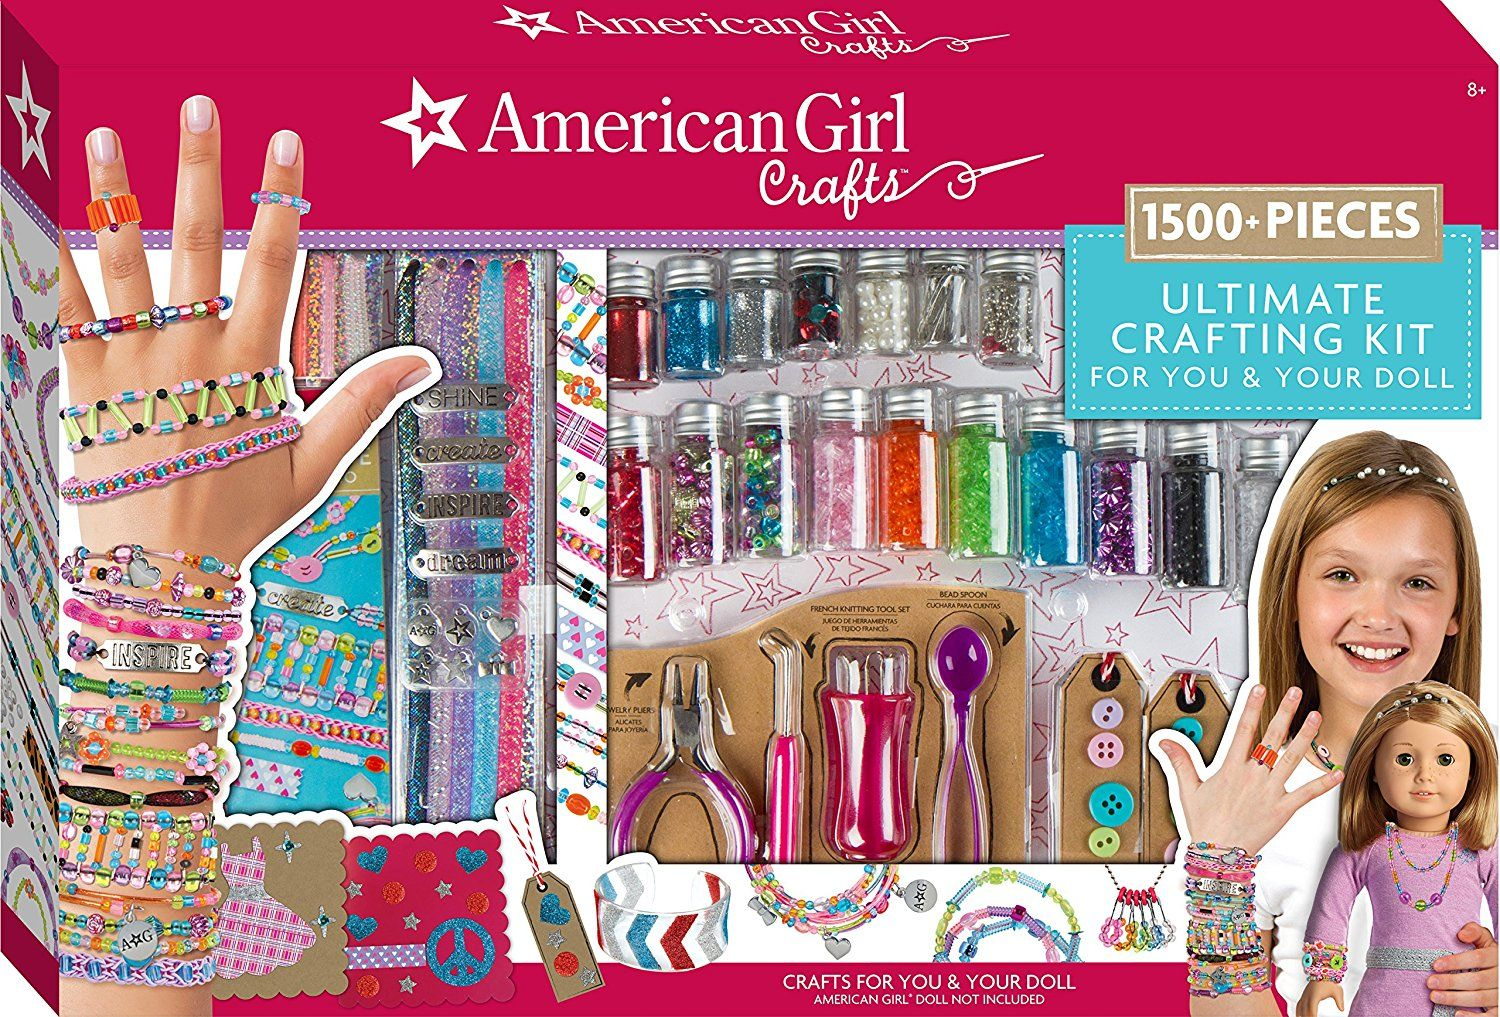 22+ Crafts for 8 year olds girl uk info